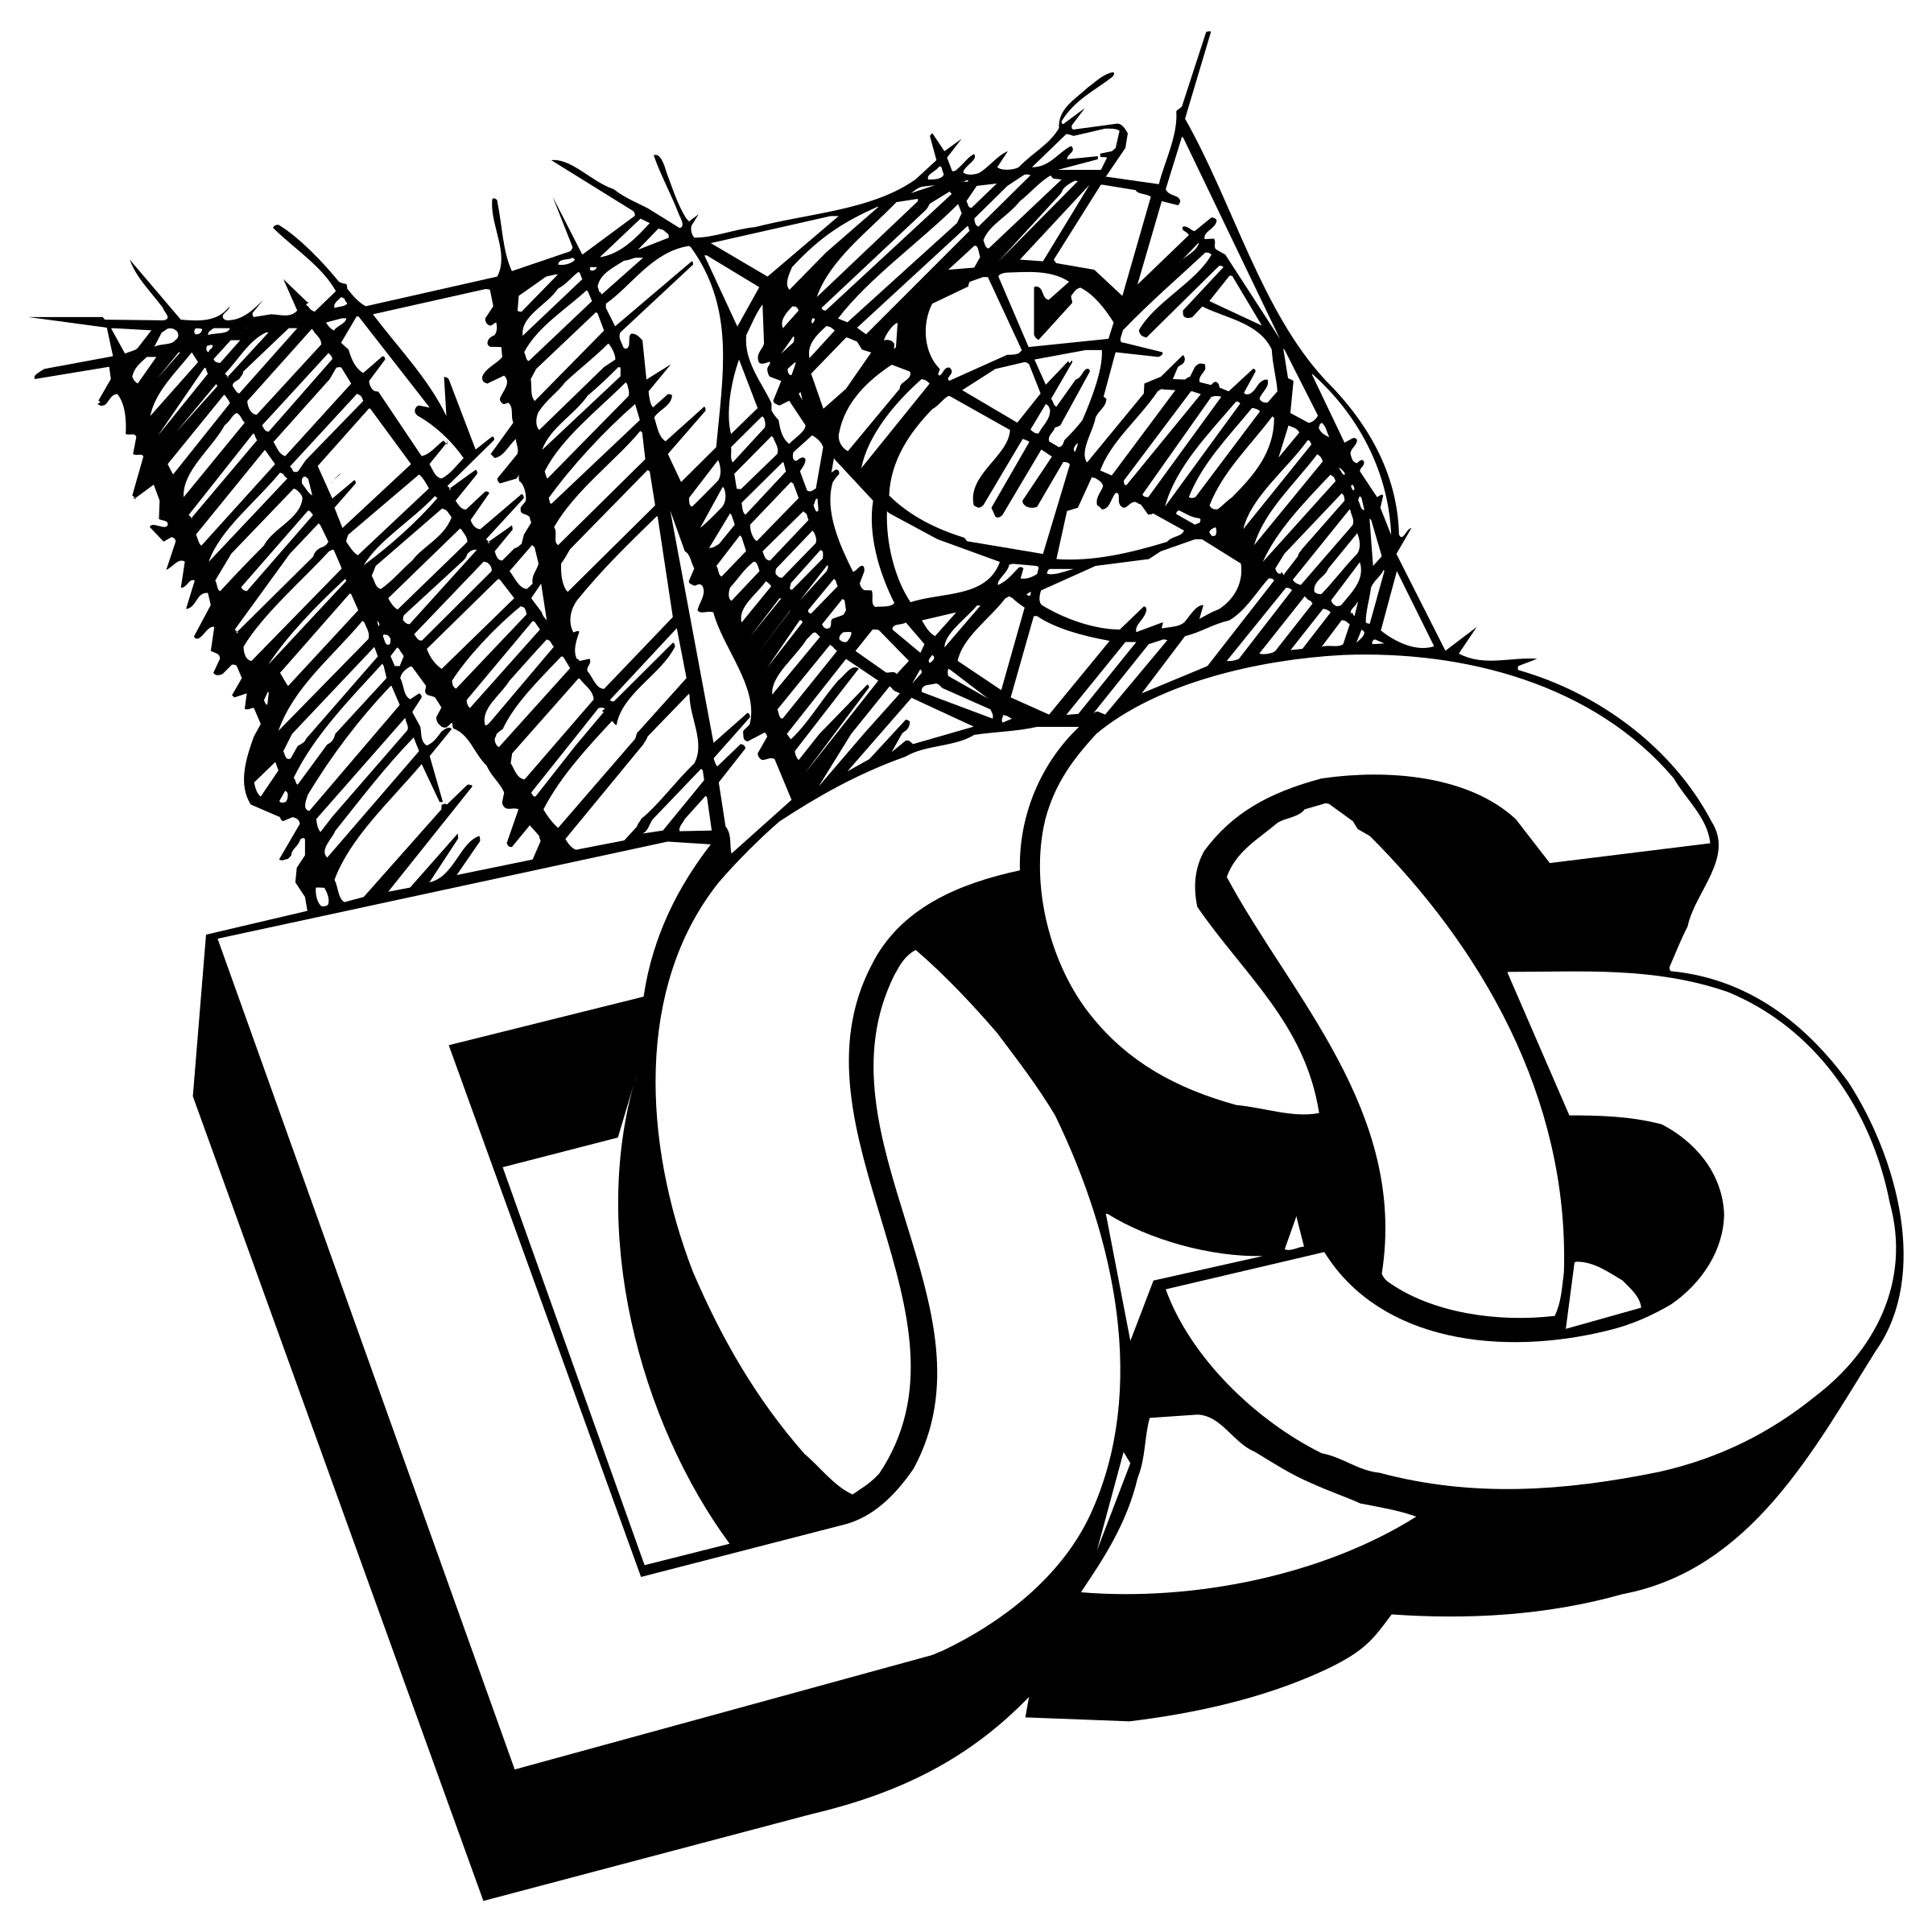 Whip clipart transparent. Ms dos logo png